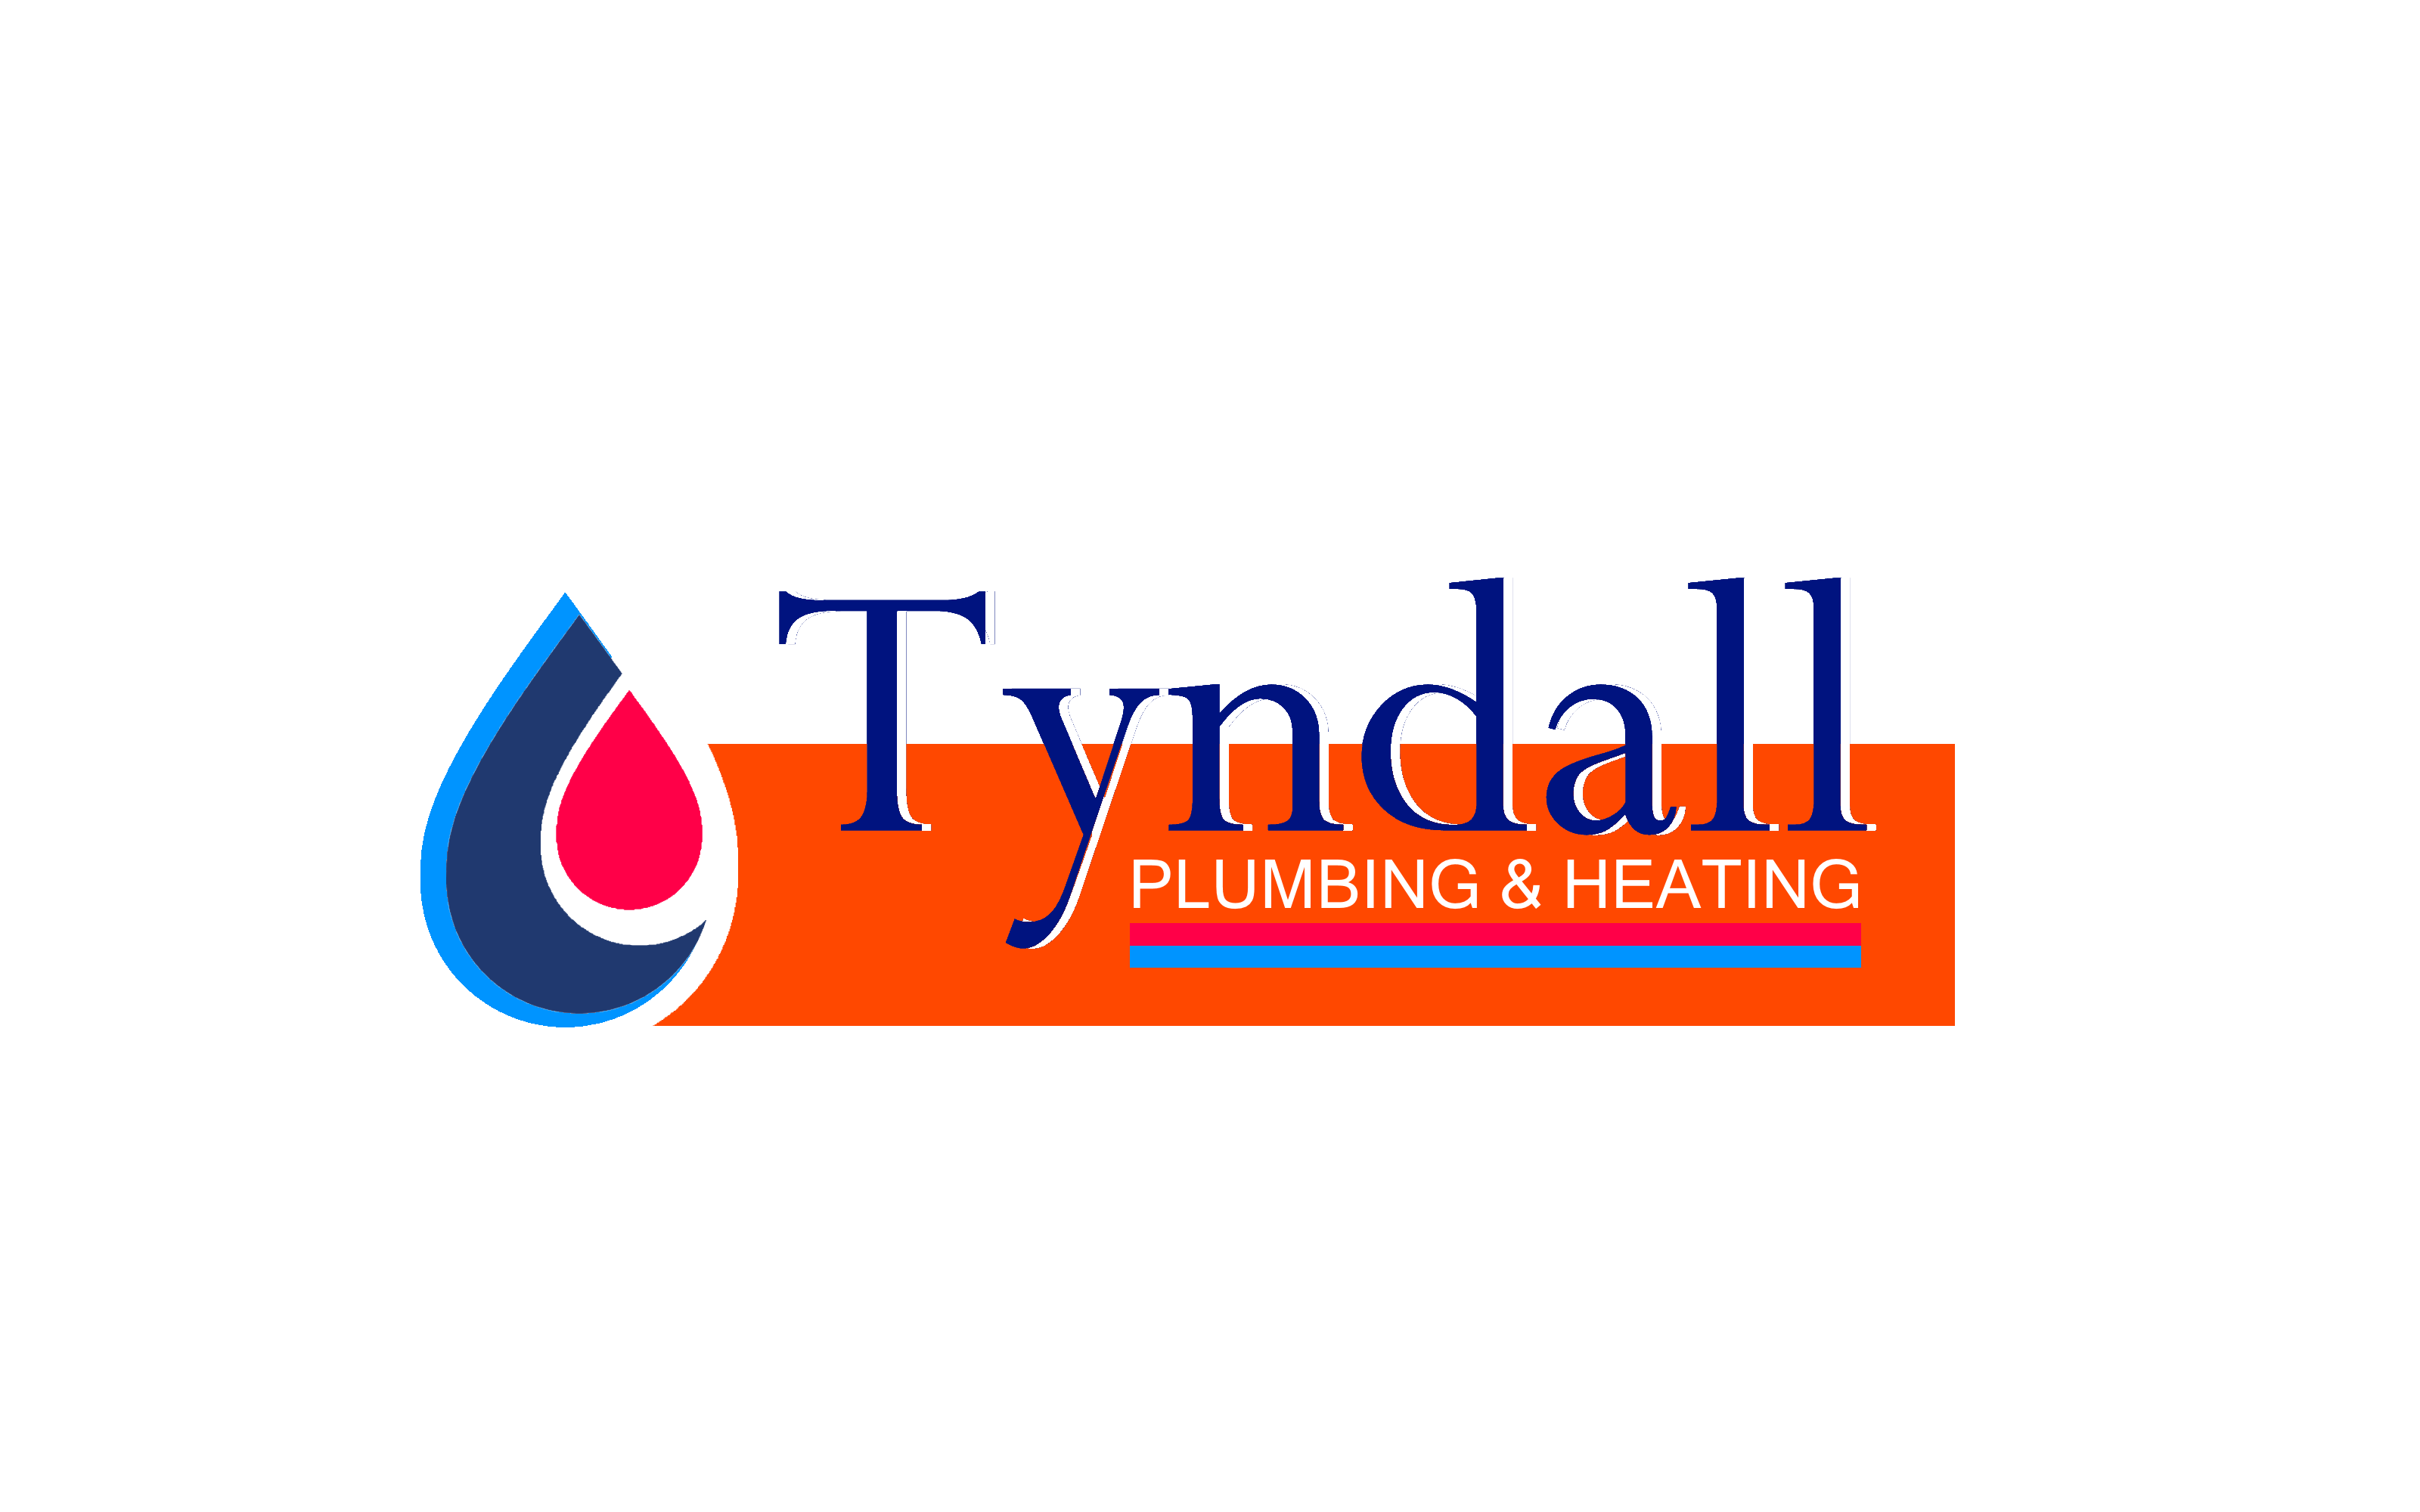 Logo Design by Roberto Bassi - Entry No. 4 in the Logo Design Contest Imaginative Logo Design for Tyndall Plumbing & Heating.